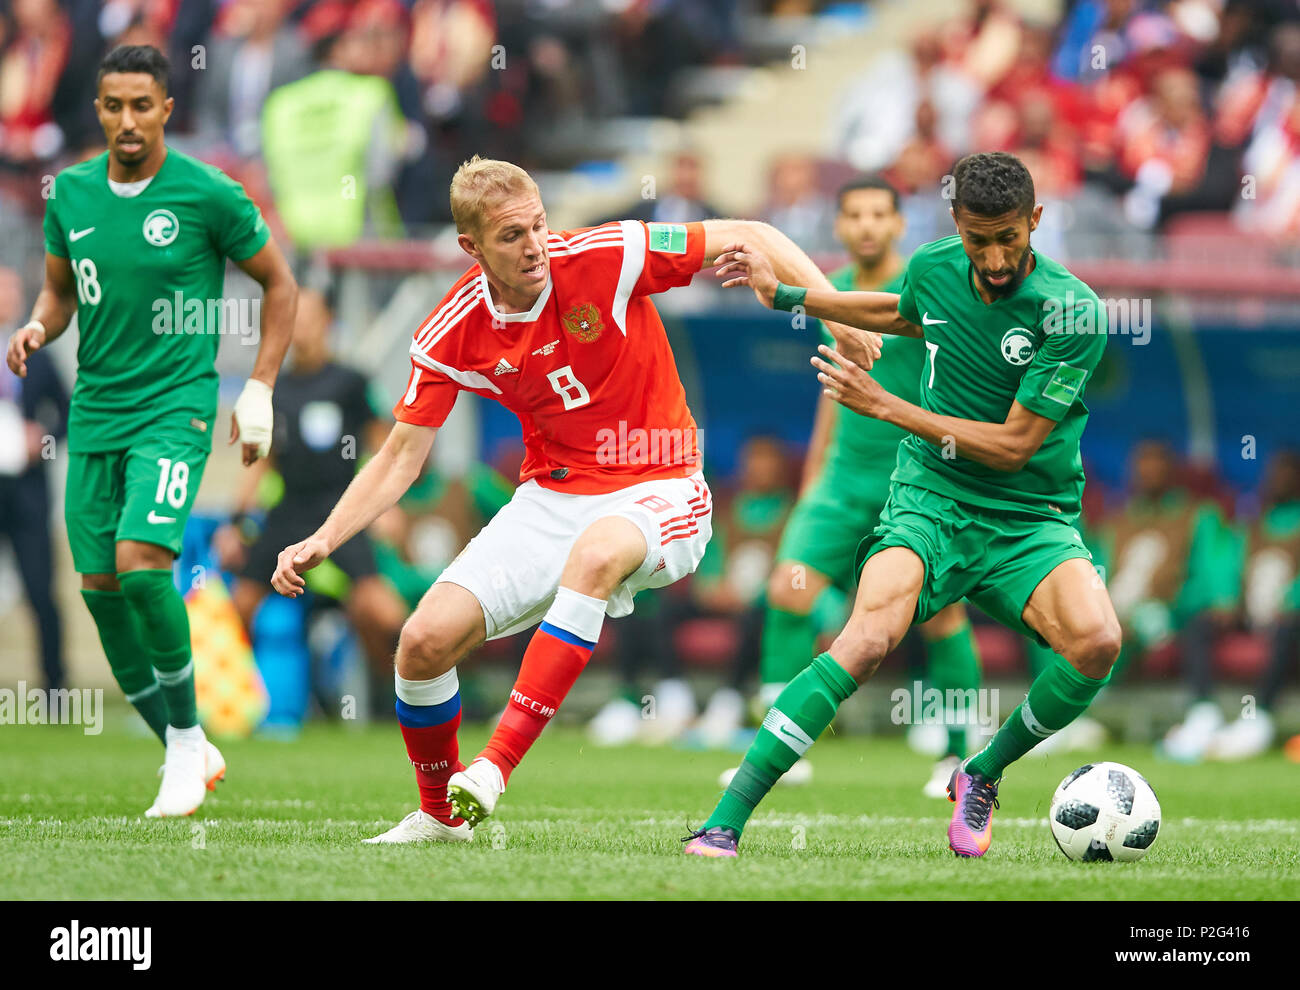 Moscow, Russia- Saudi Arabia, Soccer, Moscow, June 14, 2018 Iury GAZINSKY, Russia Nr.8  compete for the ball, tackling, duel, header against Salman ALFARAJ, Saudi Arabia Nr. 7  RUSSIA - SAUDI ARABIA 5-0 FIFA WORLD CUP 2018 RUSSIA opening match, Season 2018/2019,  June 14, 2018 Luzhniki Stadium in Moscow, Russia. © Peter Schatz / Alamy Live News - Stock Image